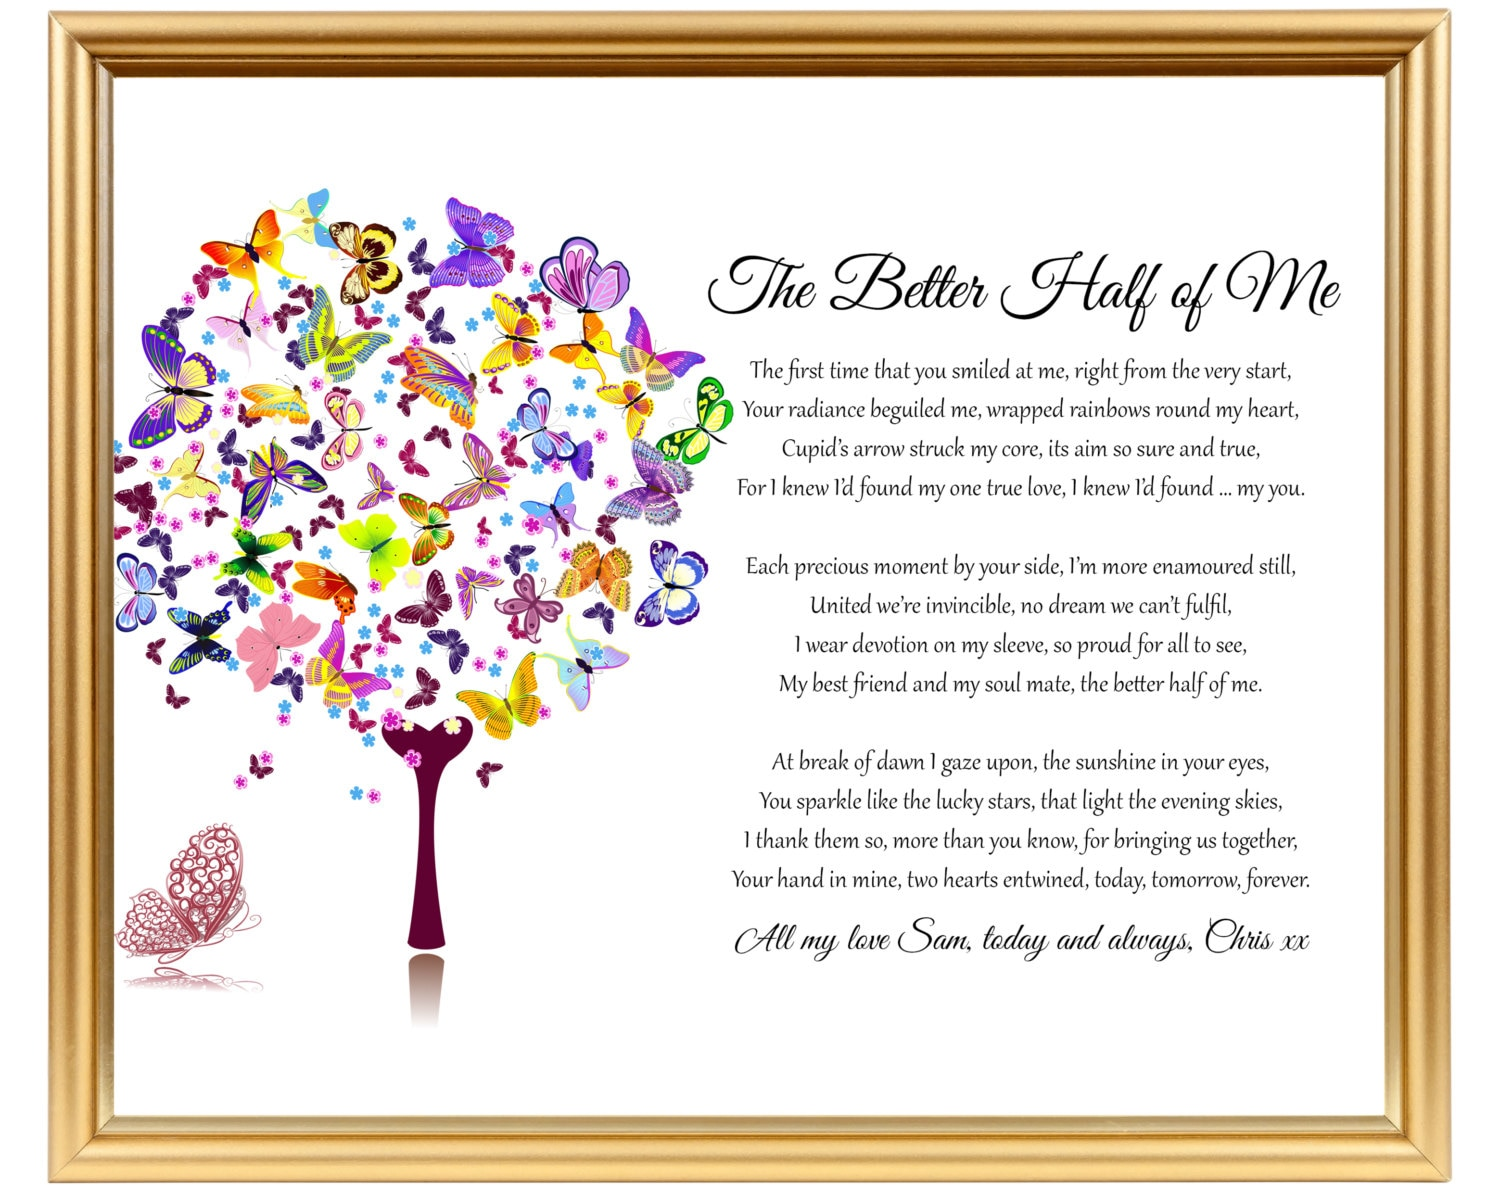 20th Wedding Anniversary Gift For Wife: Gift For Wedding Anniversary Poem For Him Her For Wife For